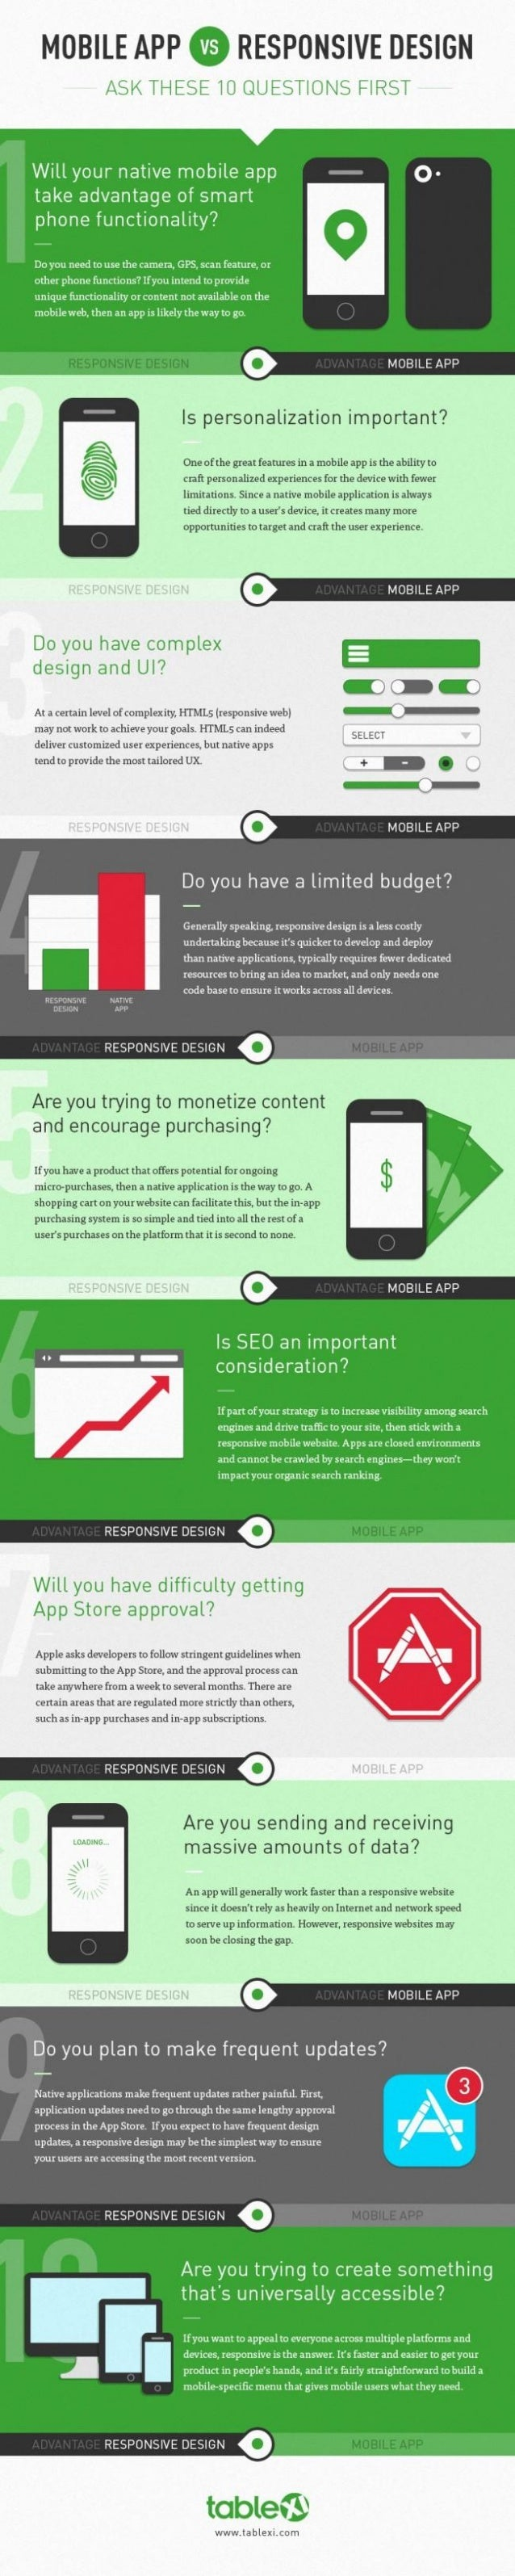 10 Questions to ask Mobile App vs Mobile Site